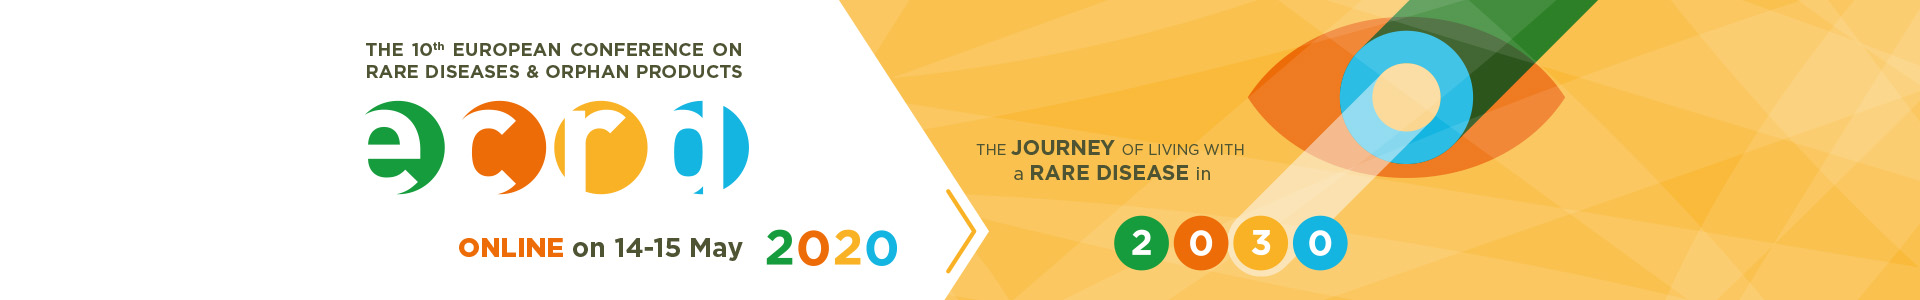 10th European Conference on Rare Diseases & Orphan Products 2020